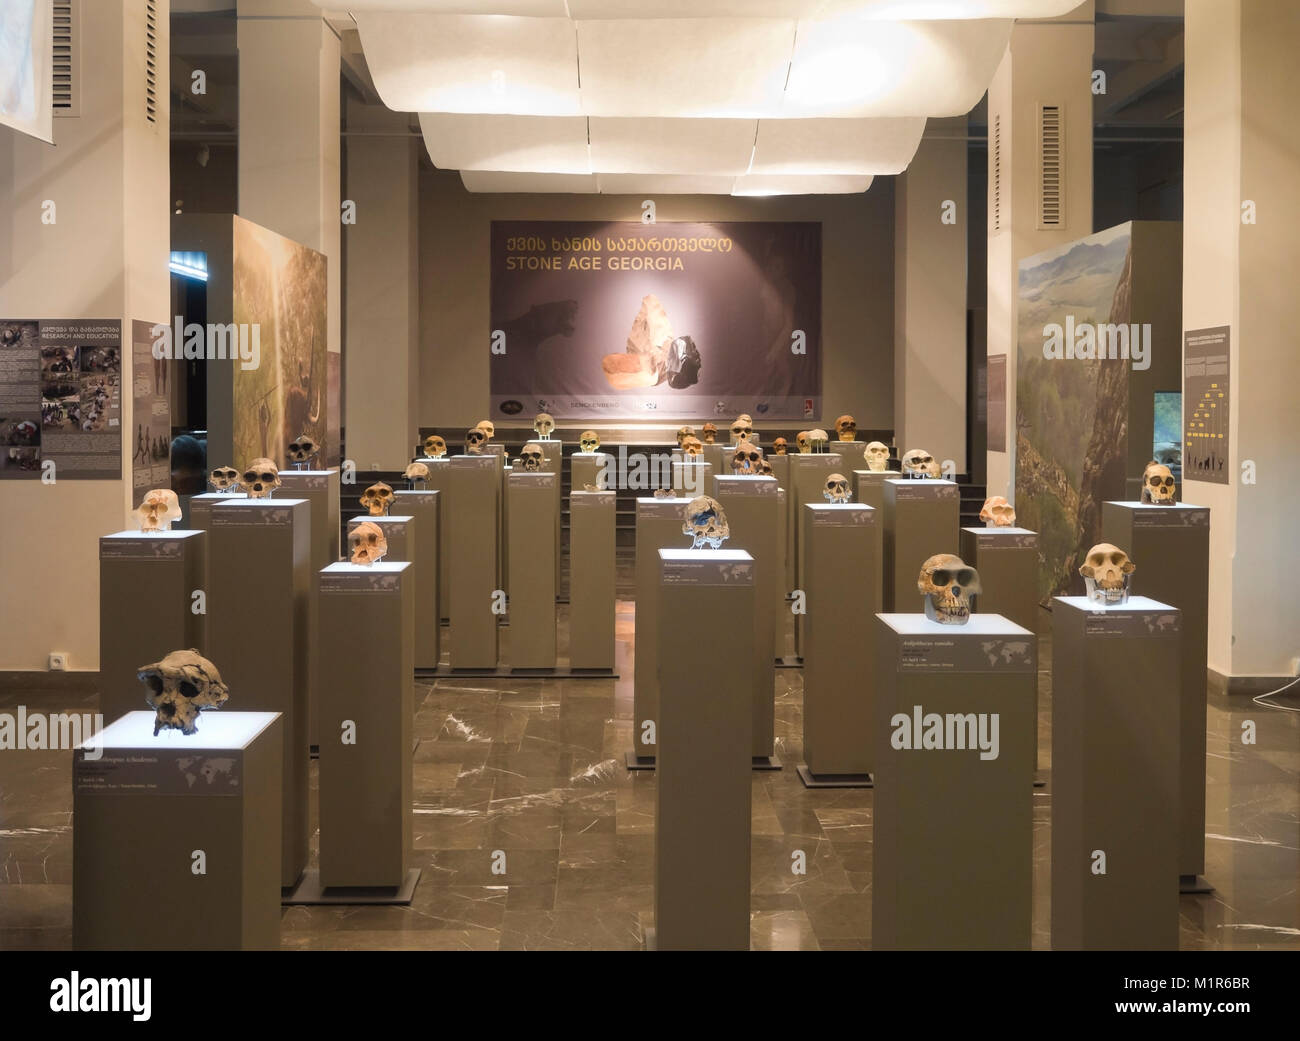 Georgian National Museum in he capital Tbilisi has many different exhibitions, Stone age Georgia with sculls from - Stock Image